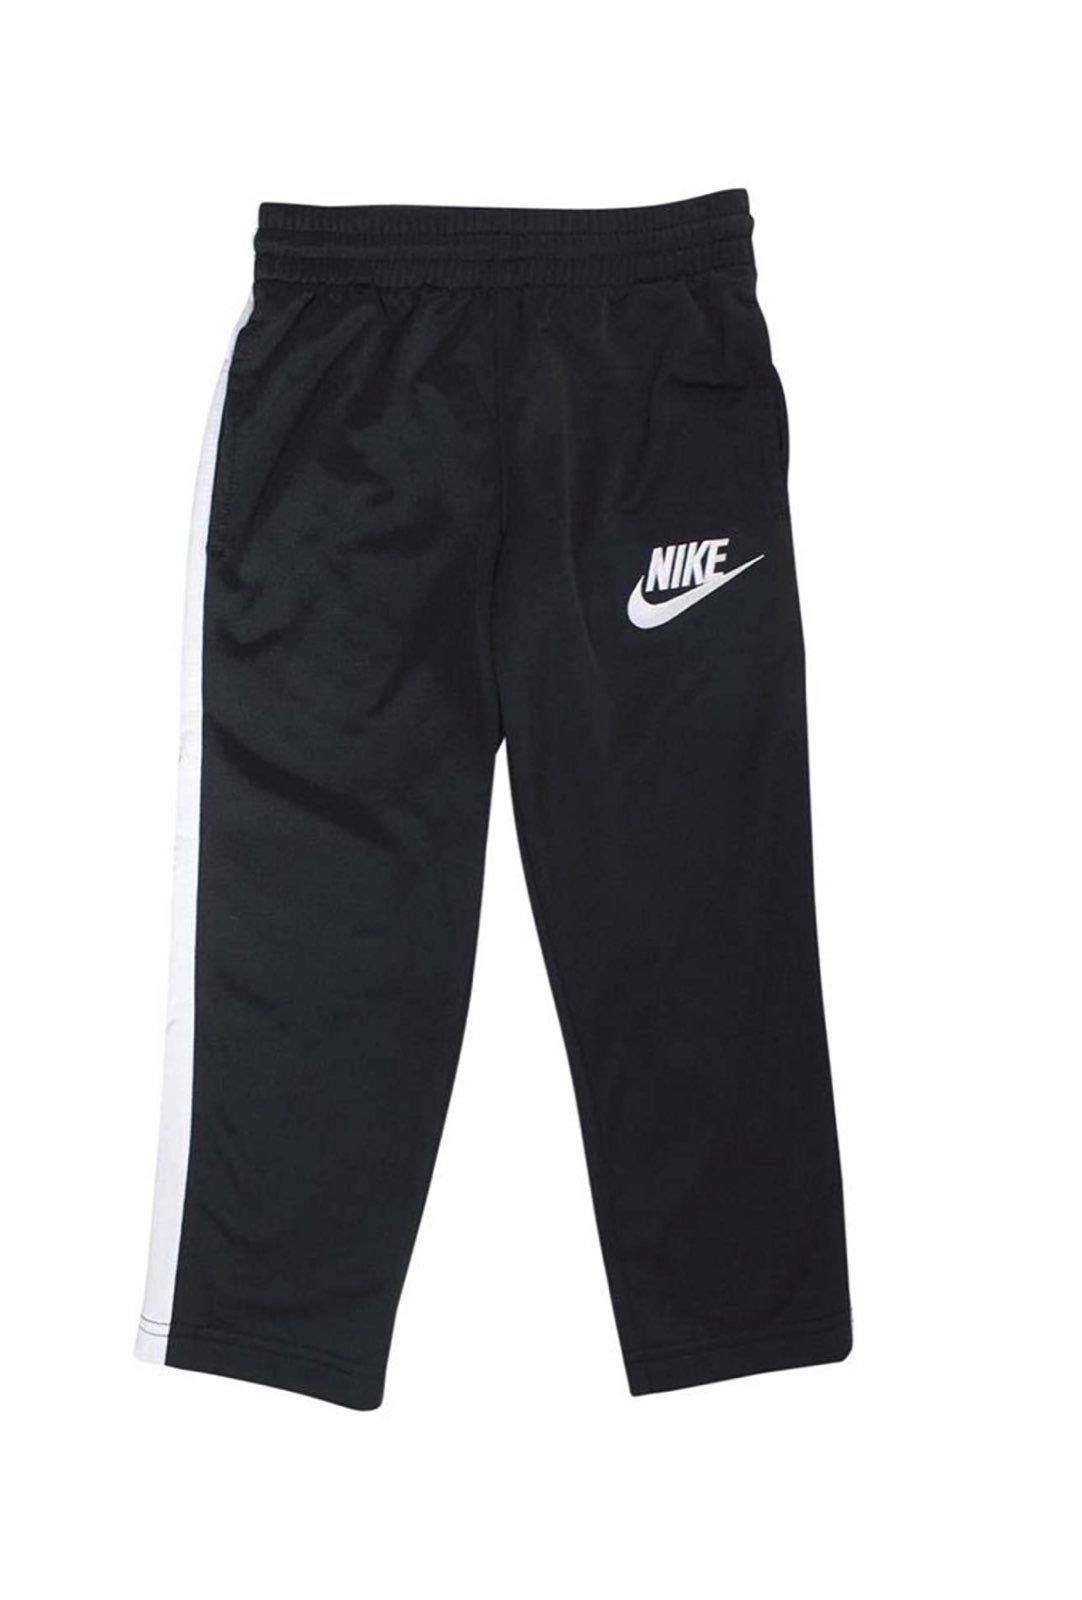 Nike track pants /Brand New With Tags